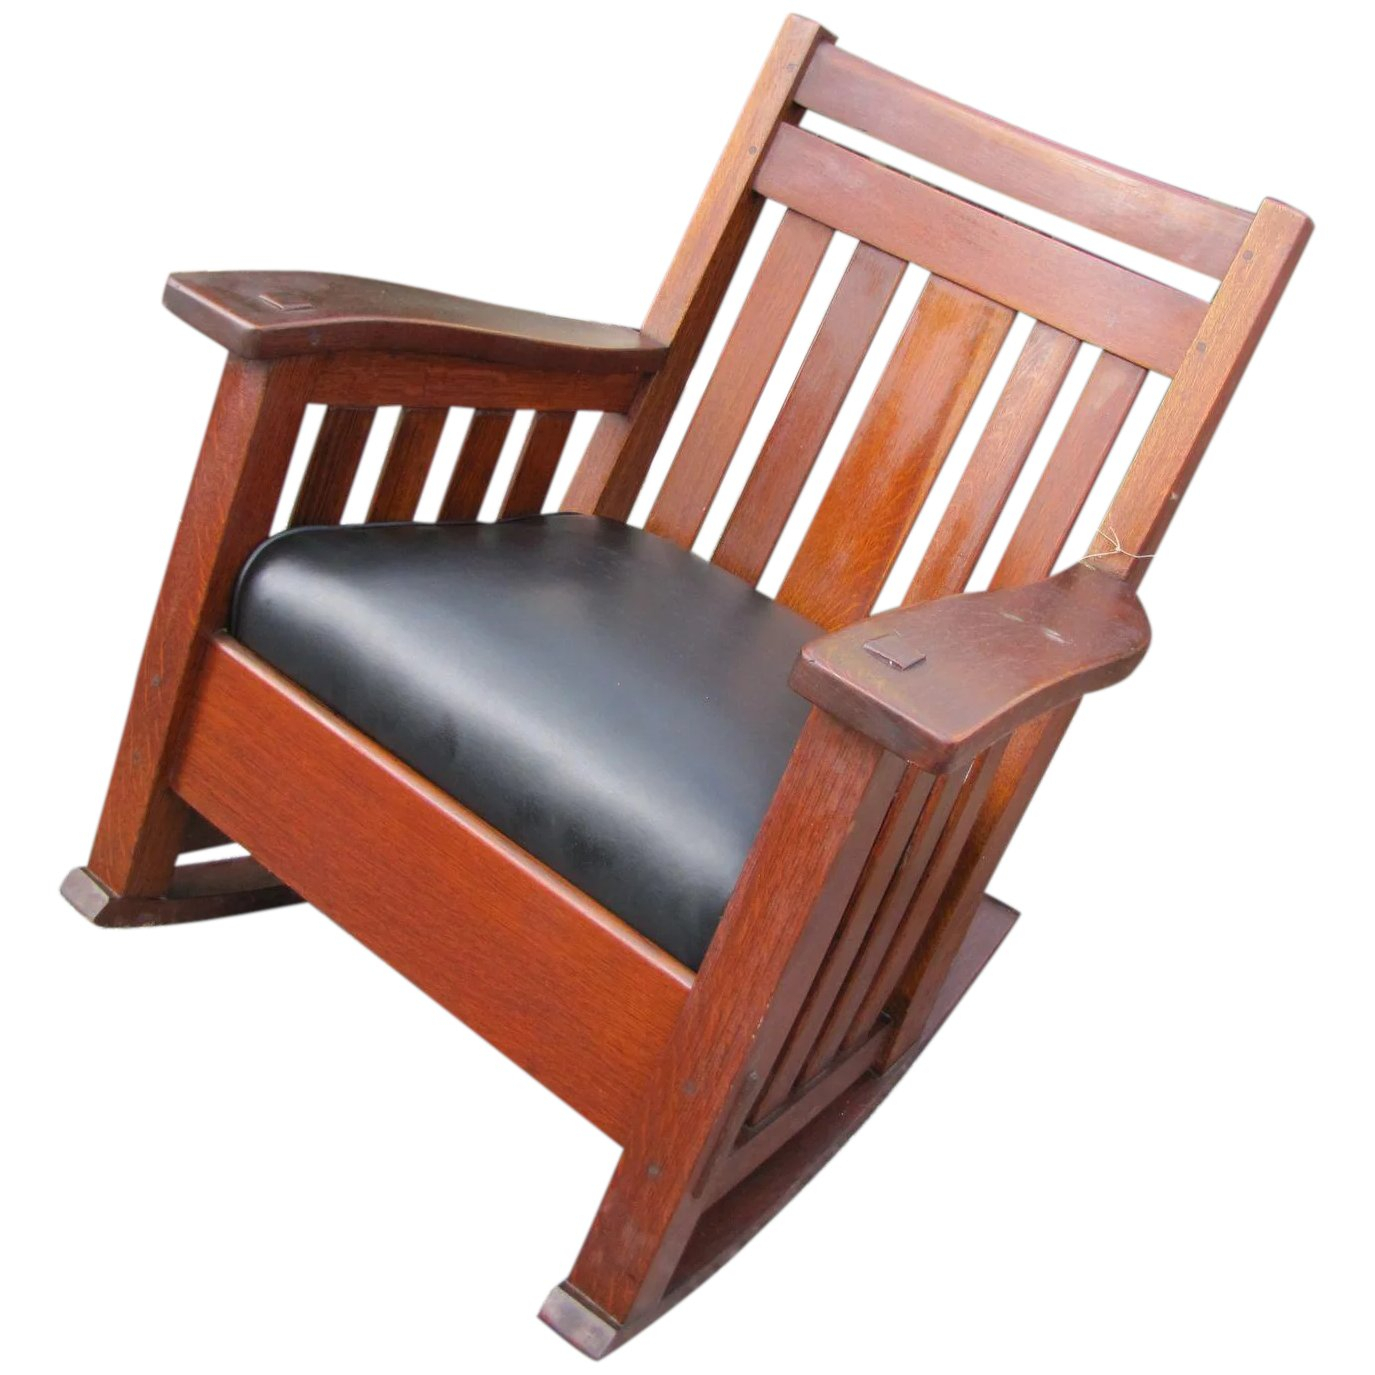 Superb Antique Harden Wavy Arm Large Rocking Chair W3045 Regarding Rosewood Traditional Dark Oak Rocking Accent Chairs (View 18 of 20)